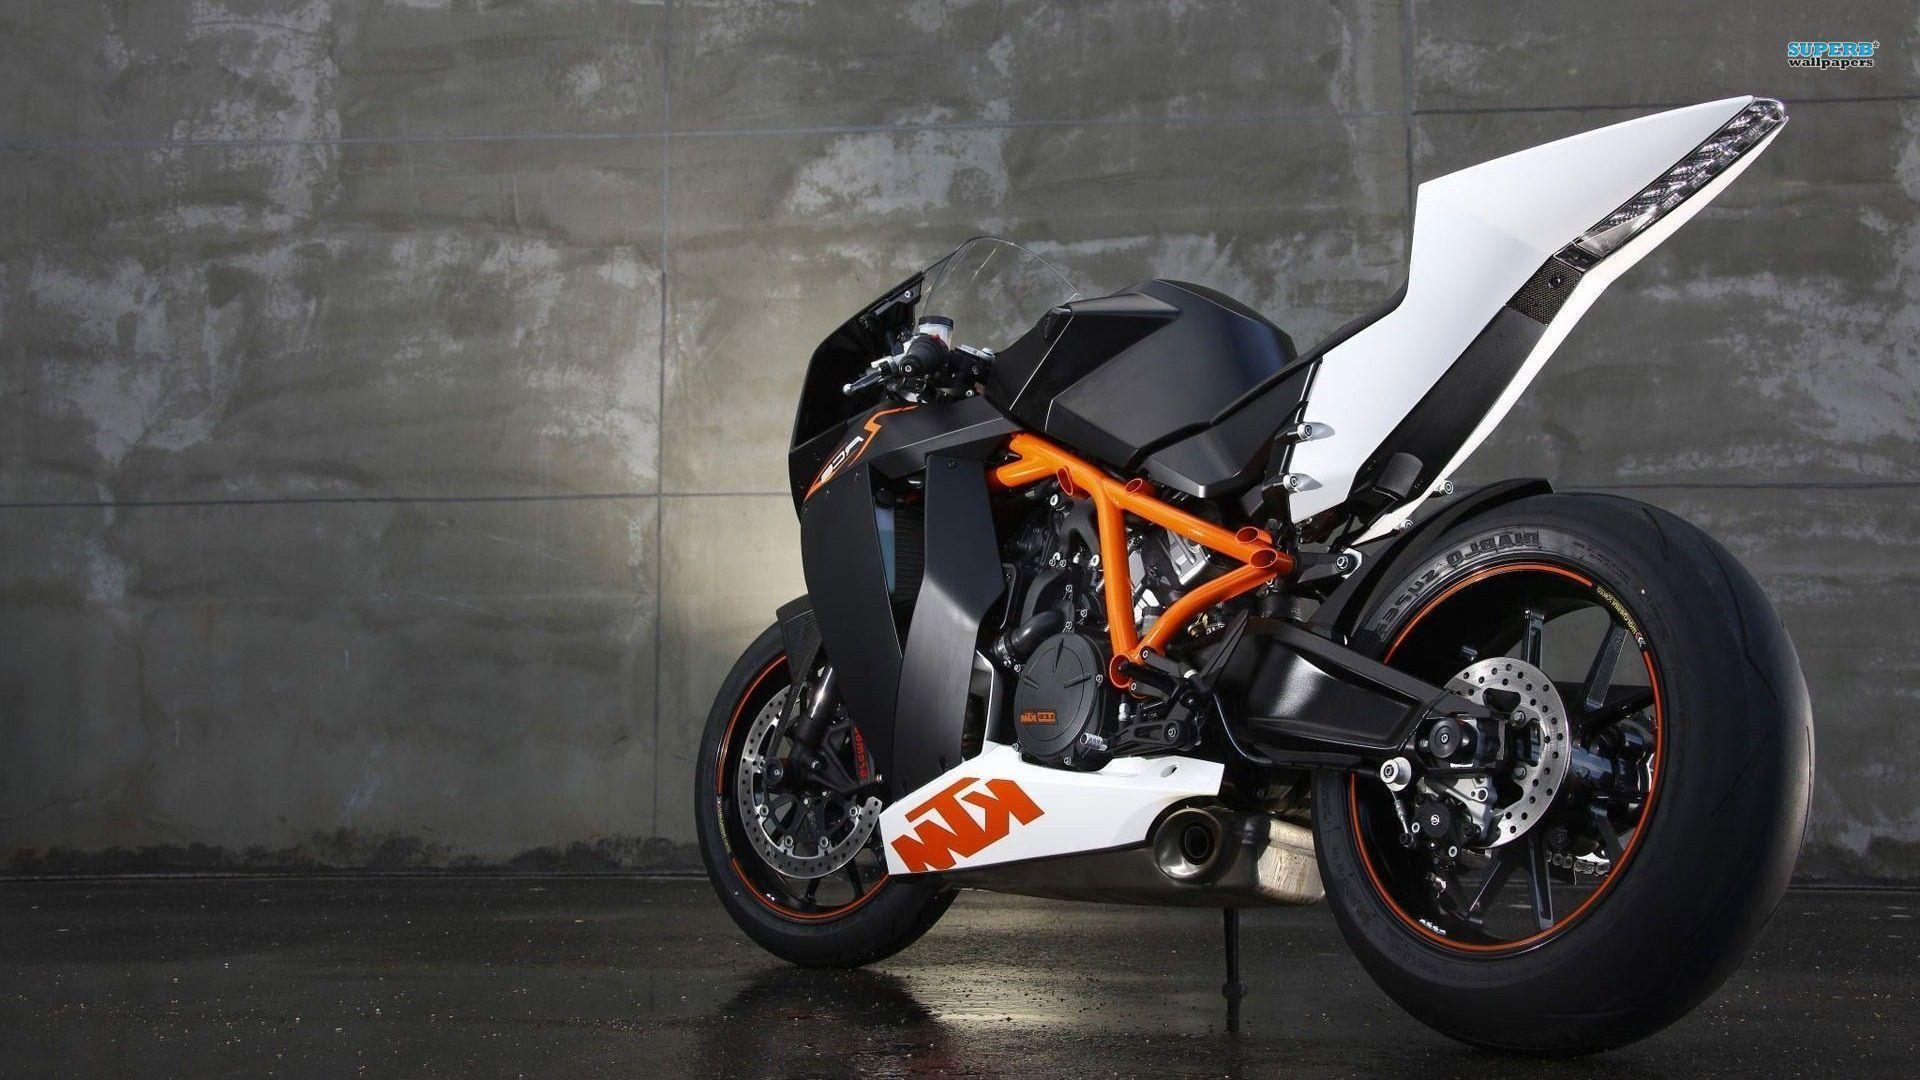 KTM 1190 RC8 wallpapers